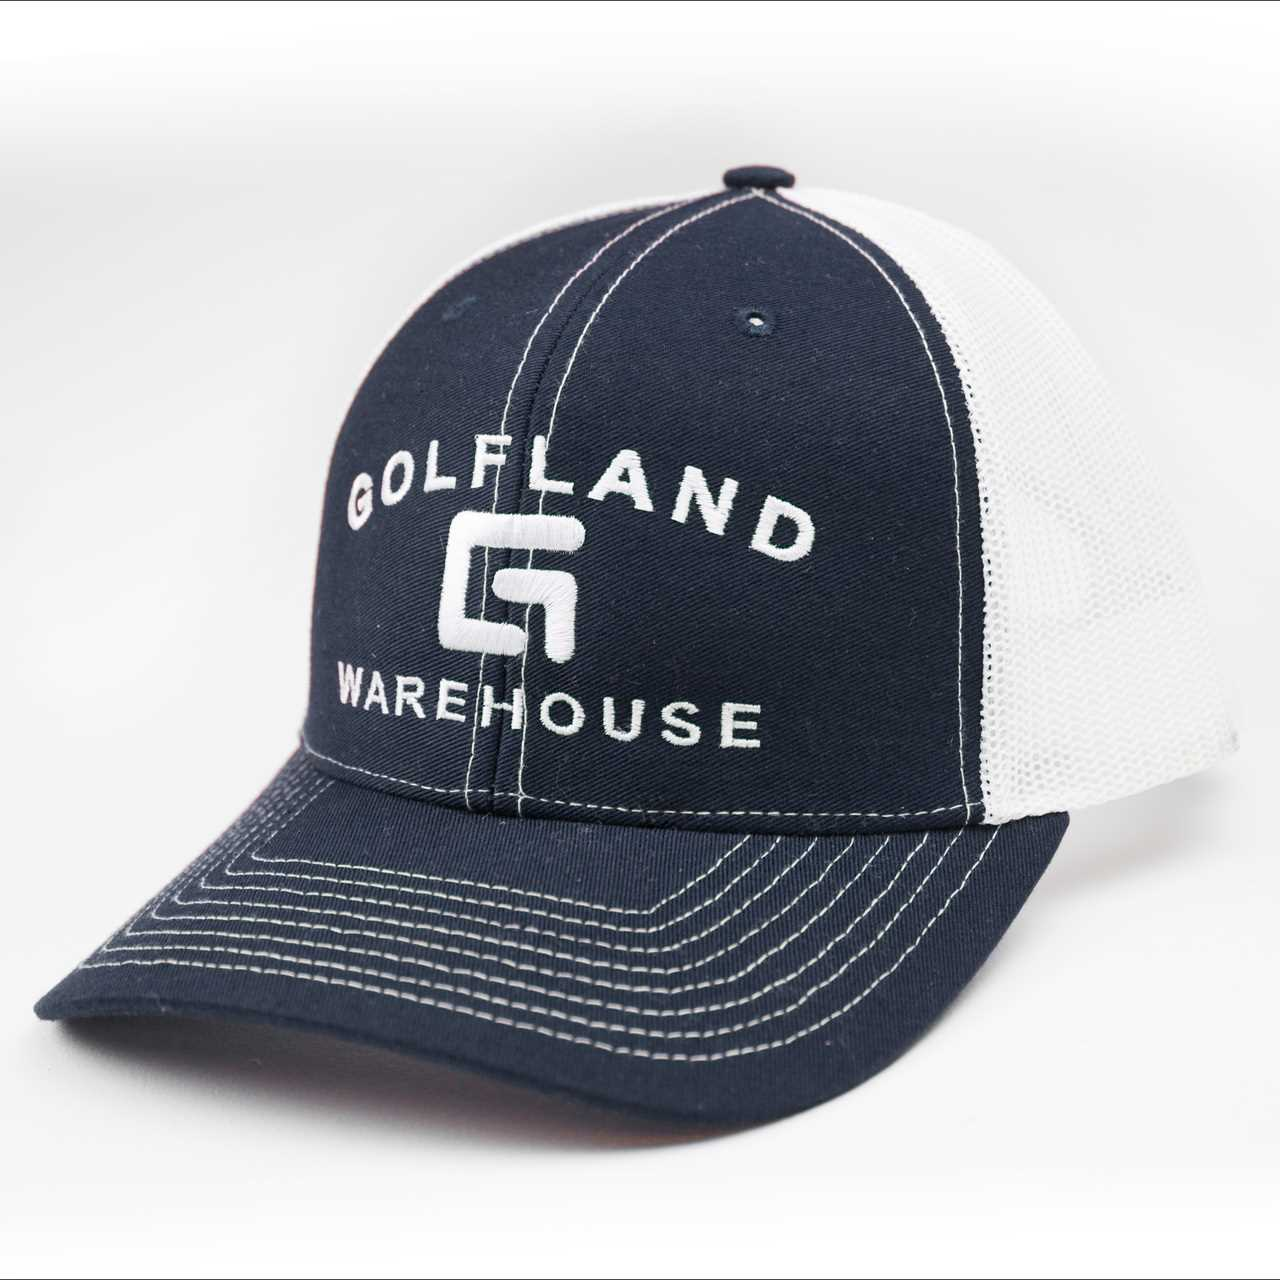 96b891ba Golfland Warehouse G1 Pacific Fitted Trucker Hat - Navy/White